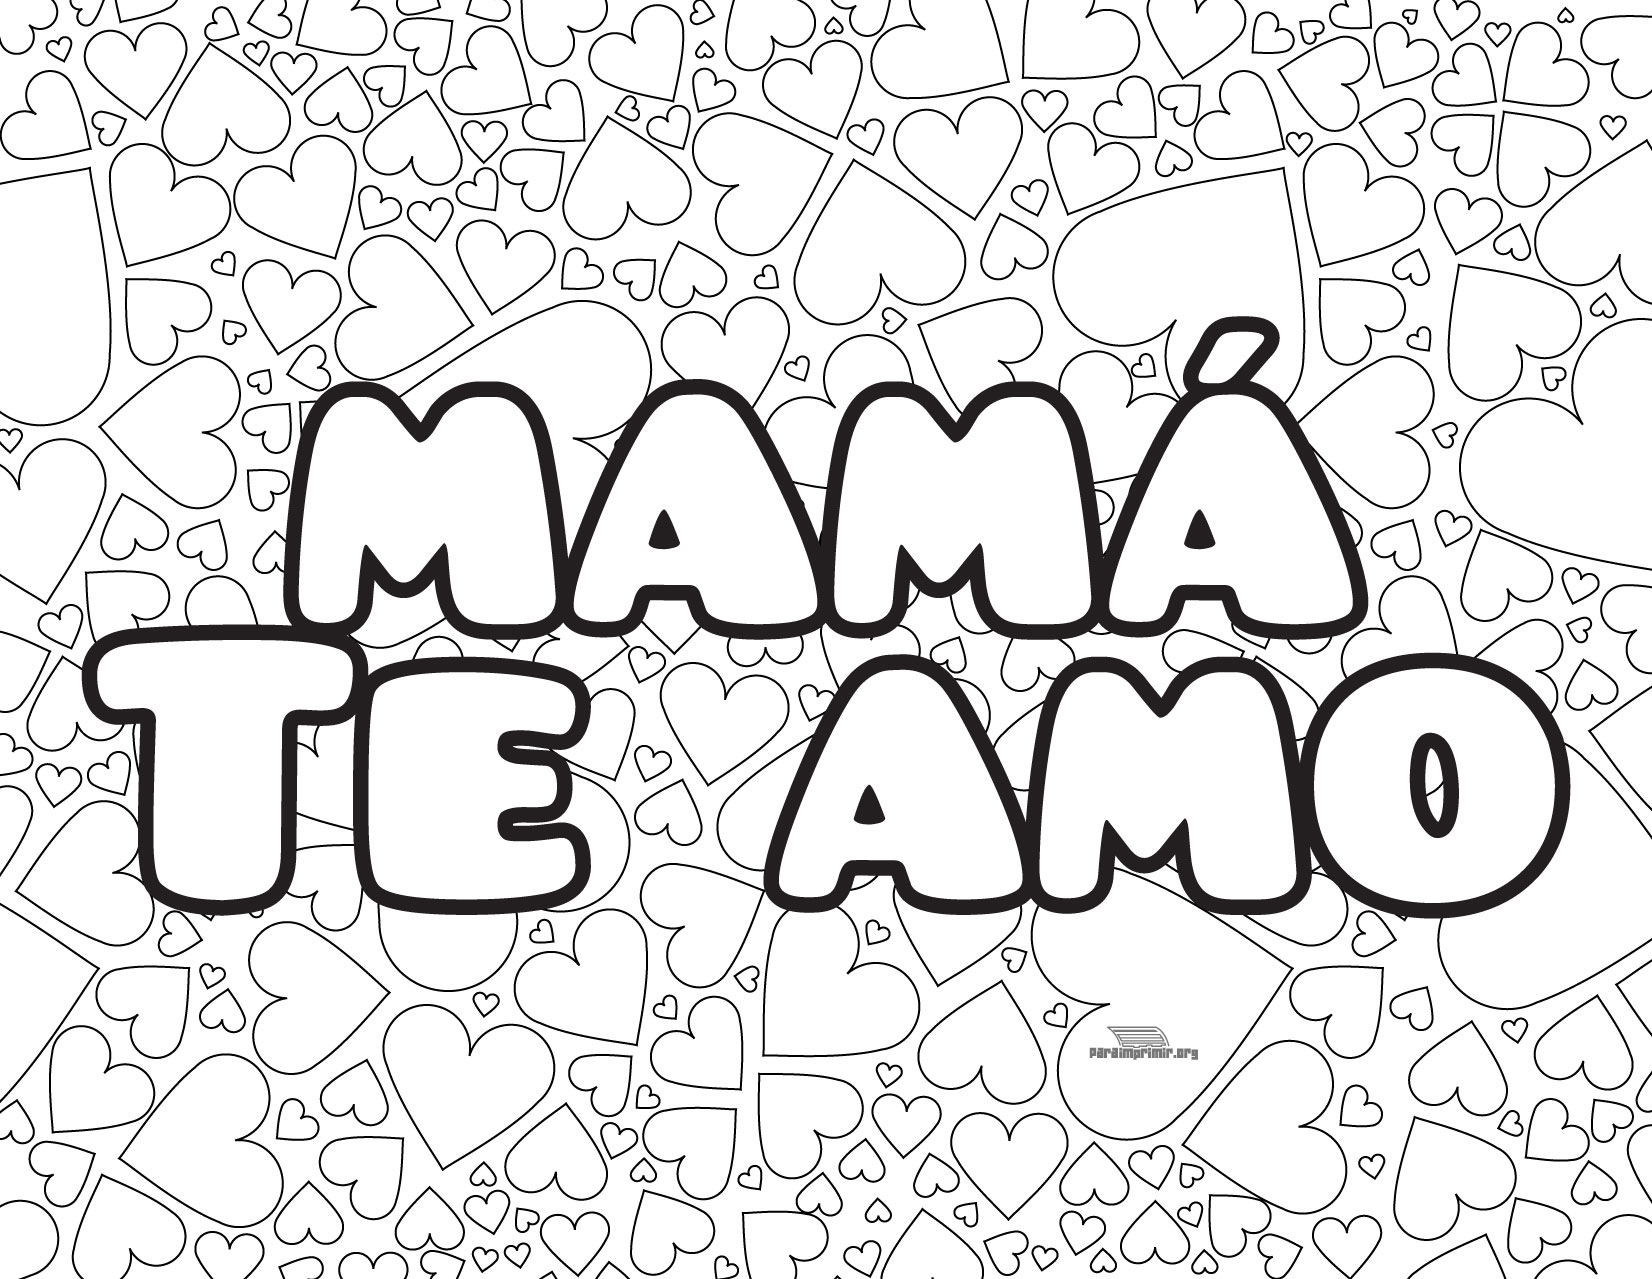 tengamo coloring pages photo35 - Feliz Cumpleanos Coloring Pages